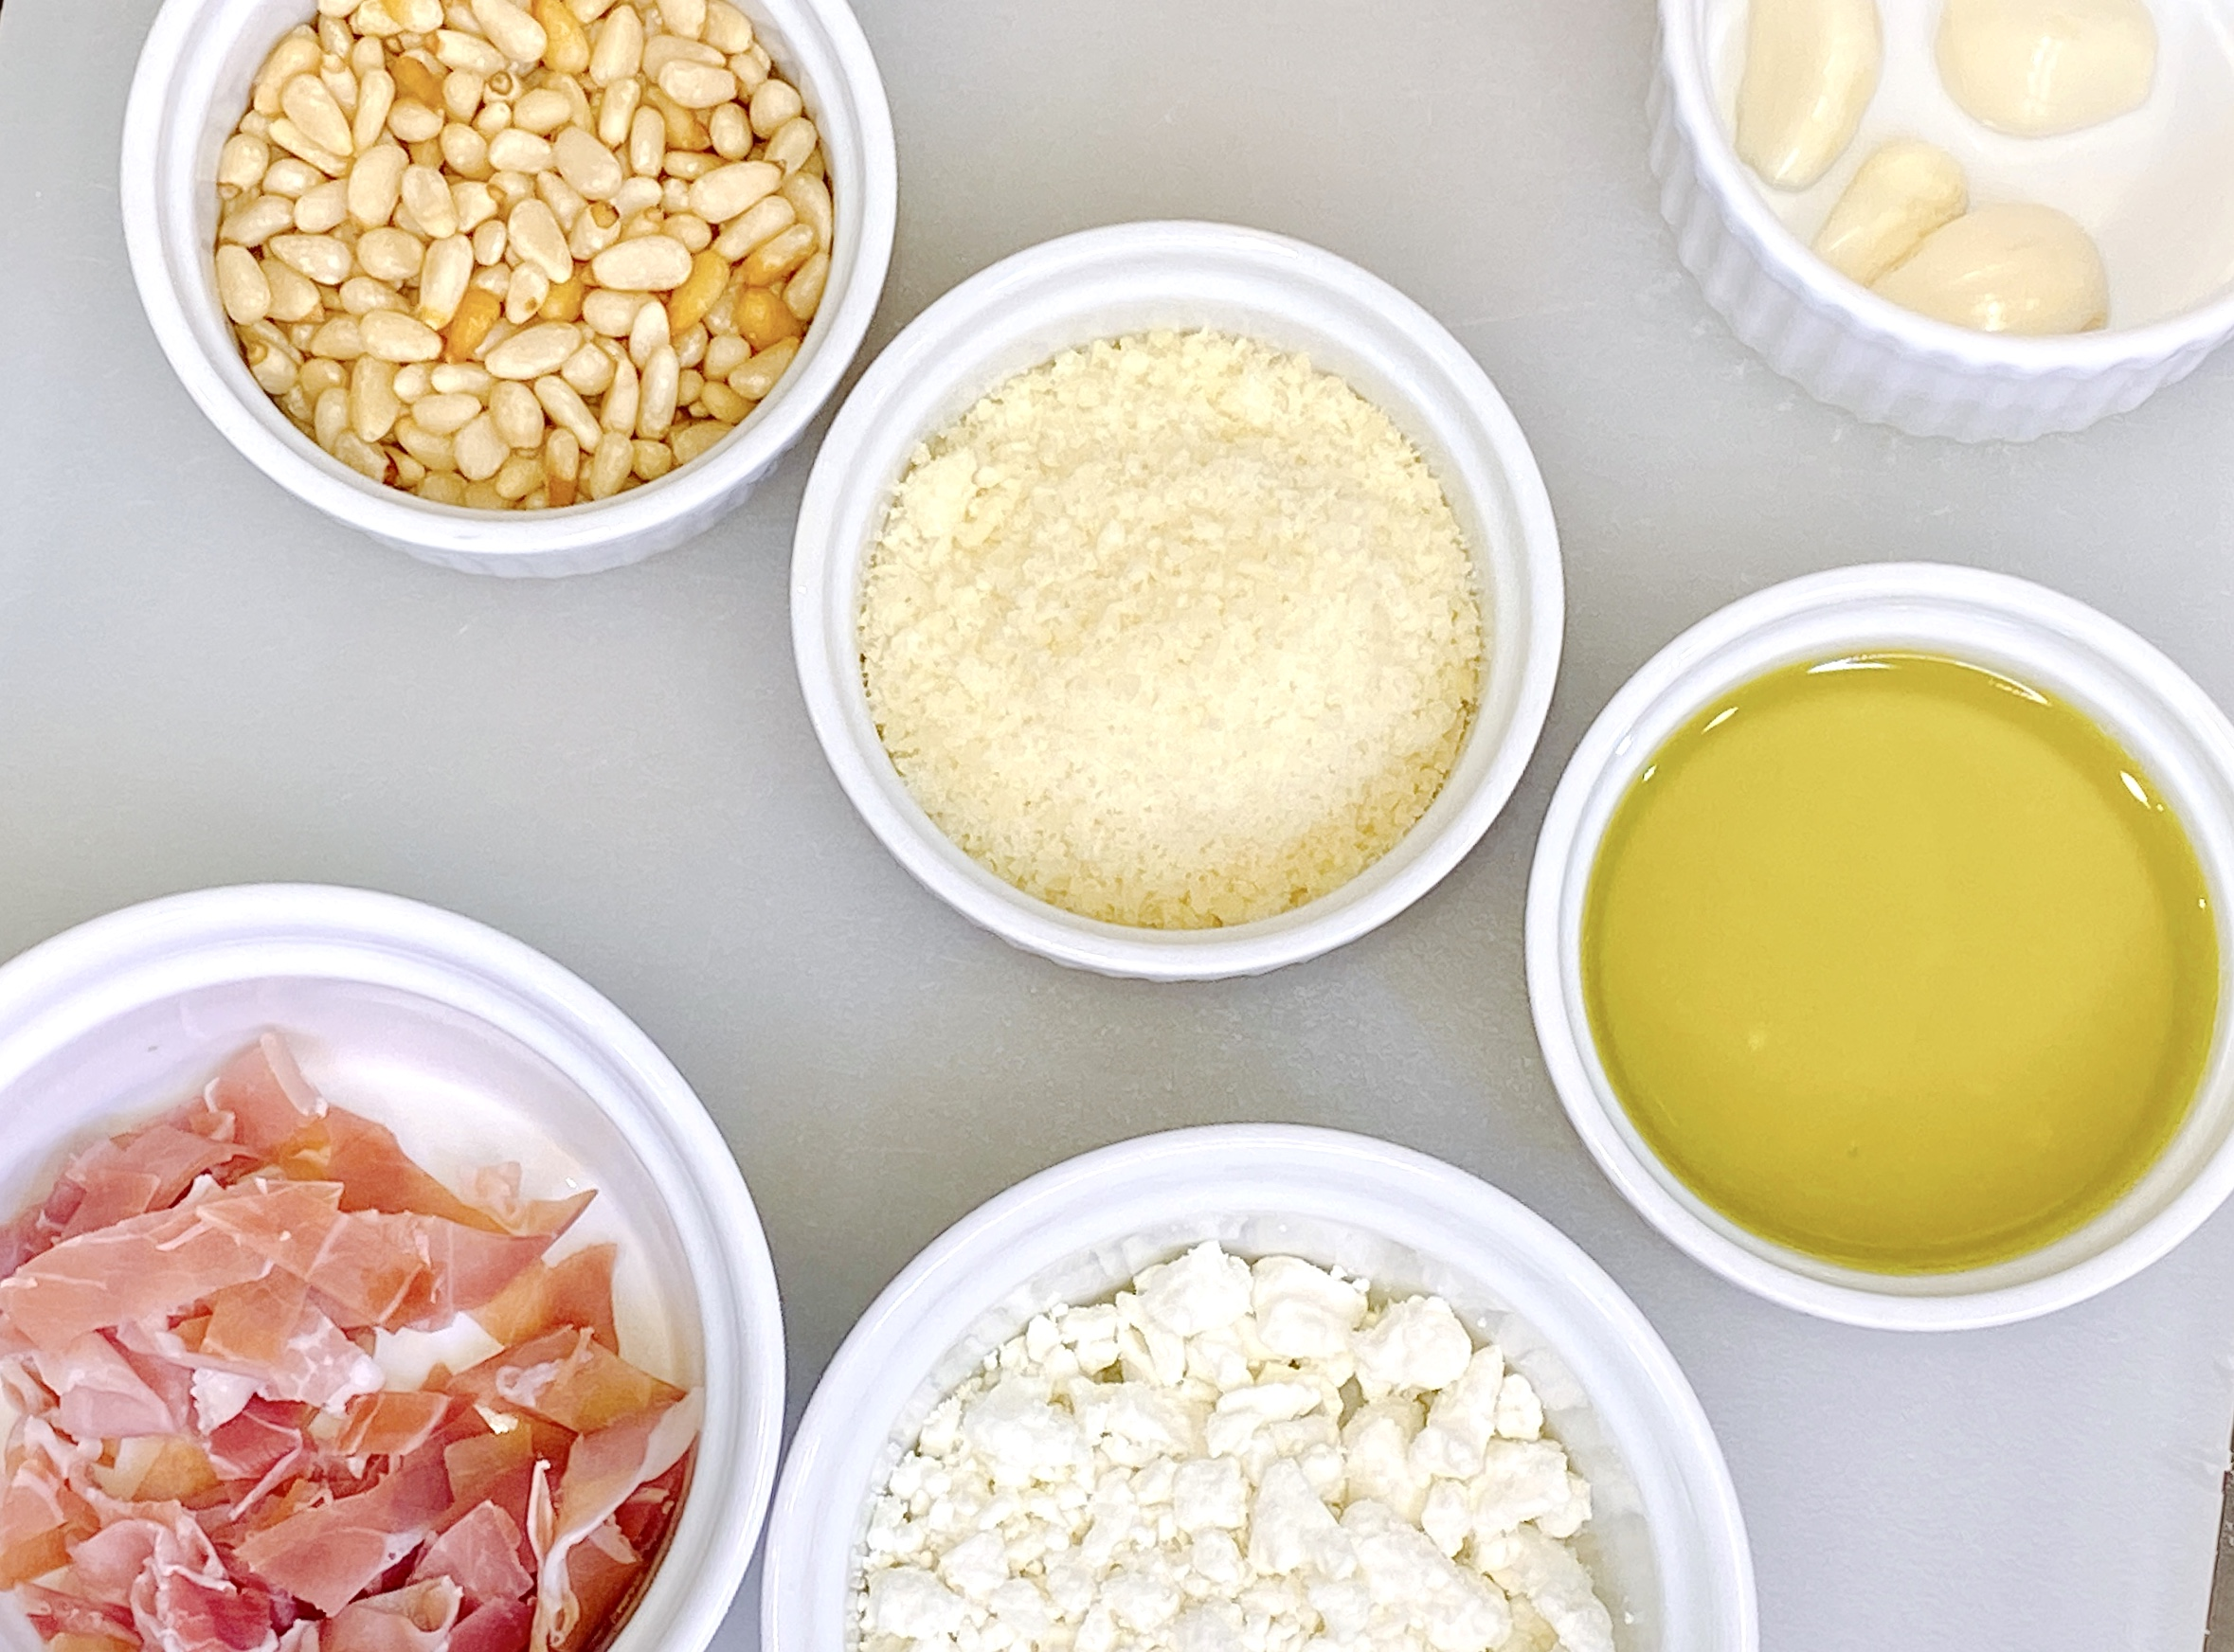 ingredients to make pesto flatbread with prosciutto, pinenuts, goat cheese and more.